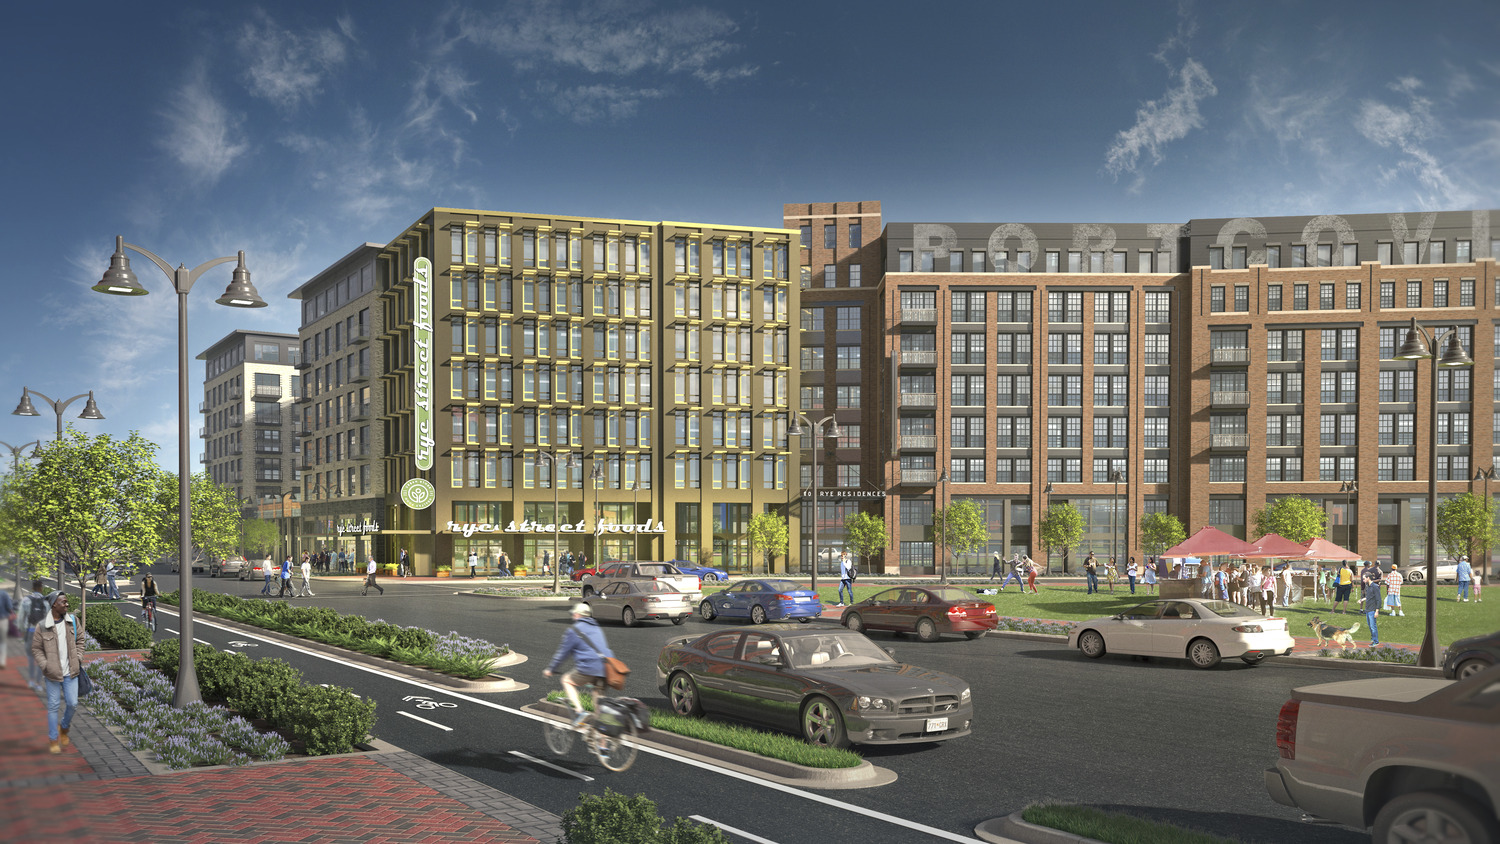 CBG builds Port Covington E1, a NGBS-Gold, 162-Unit Mixed-Use High-Rise with Precast Garage in Baltimore, MD